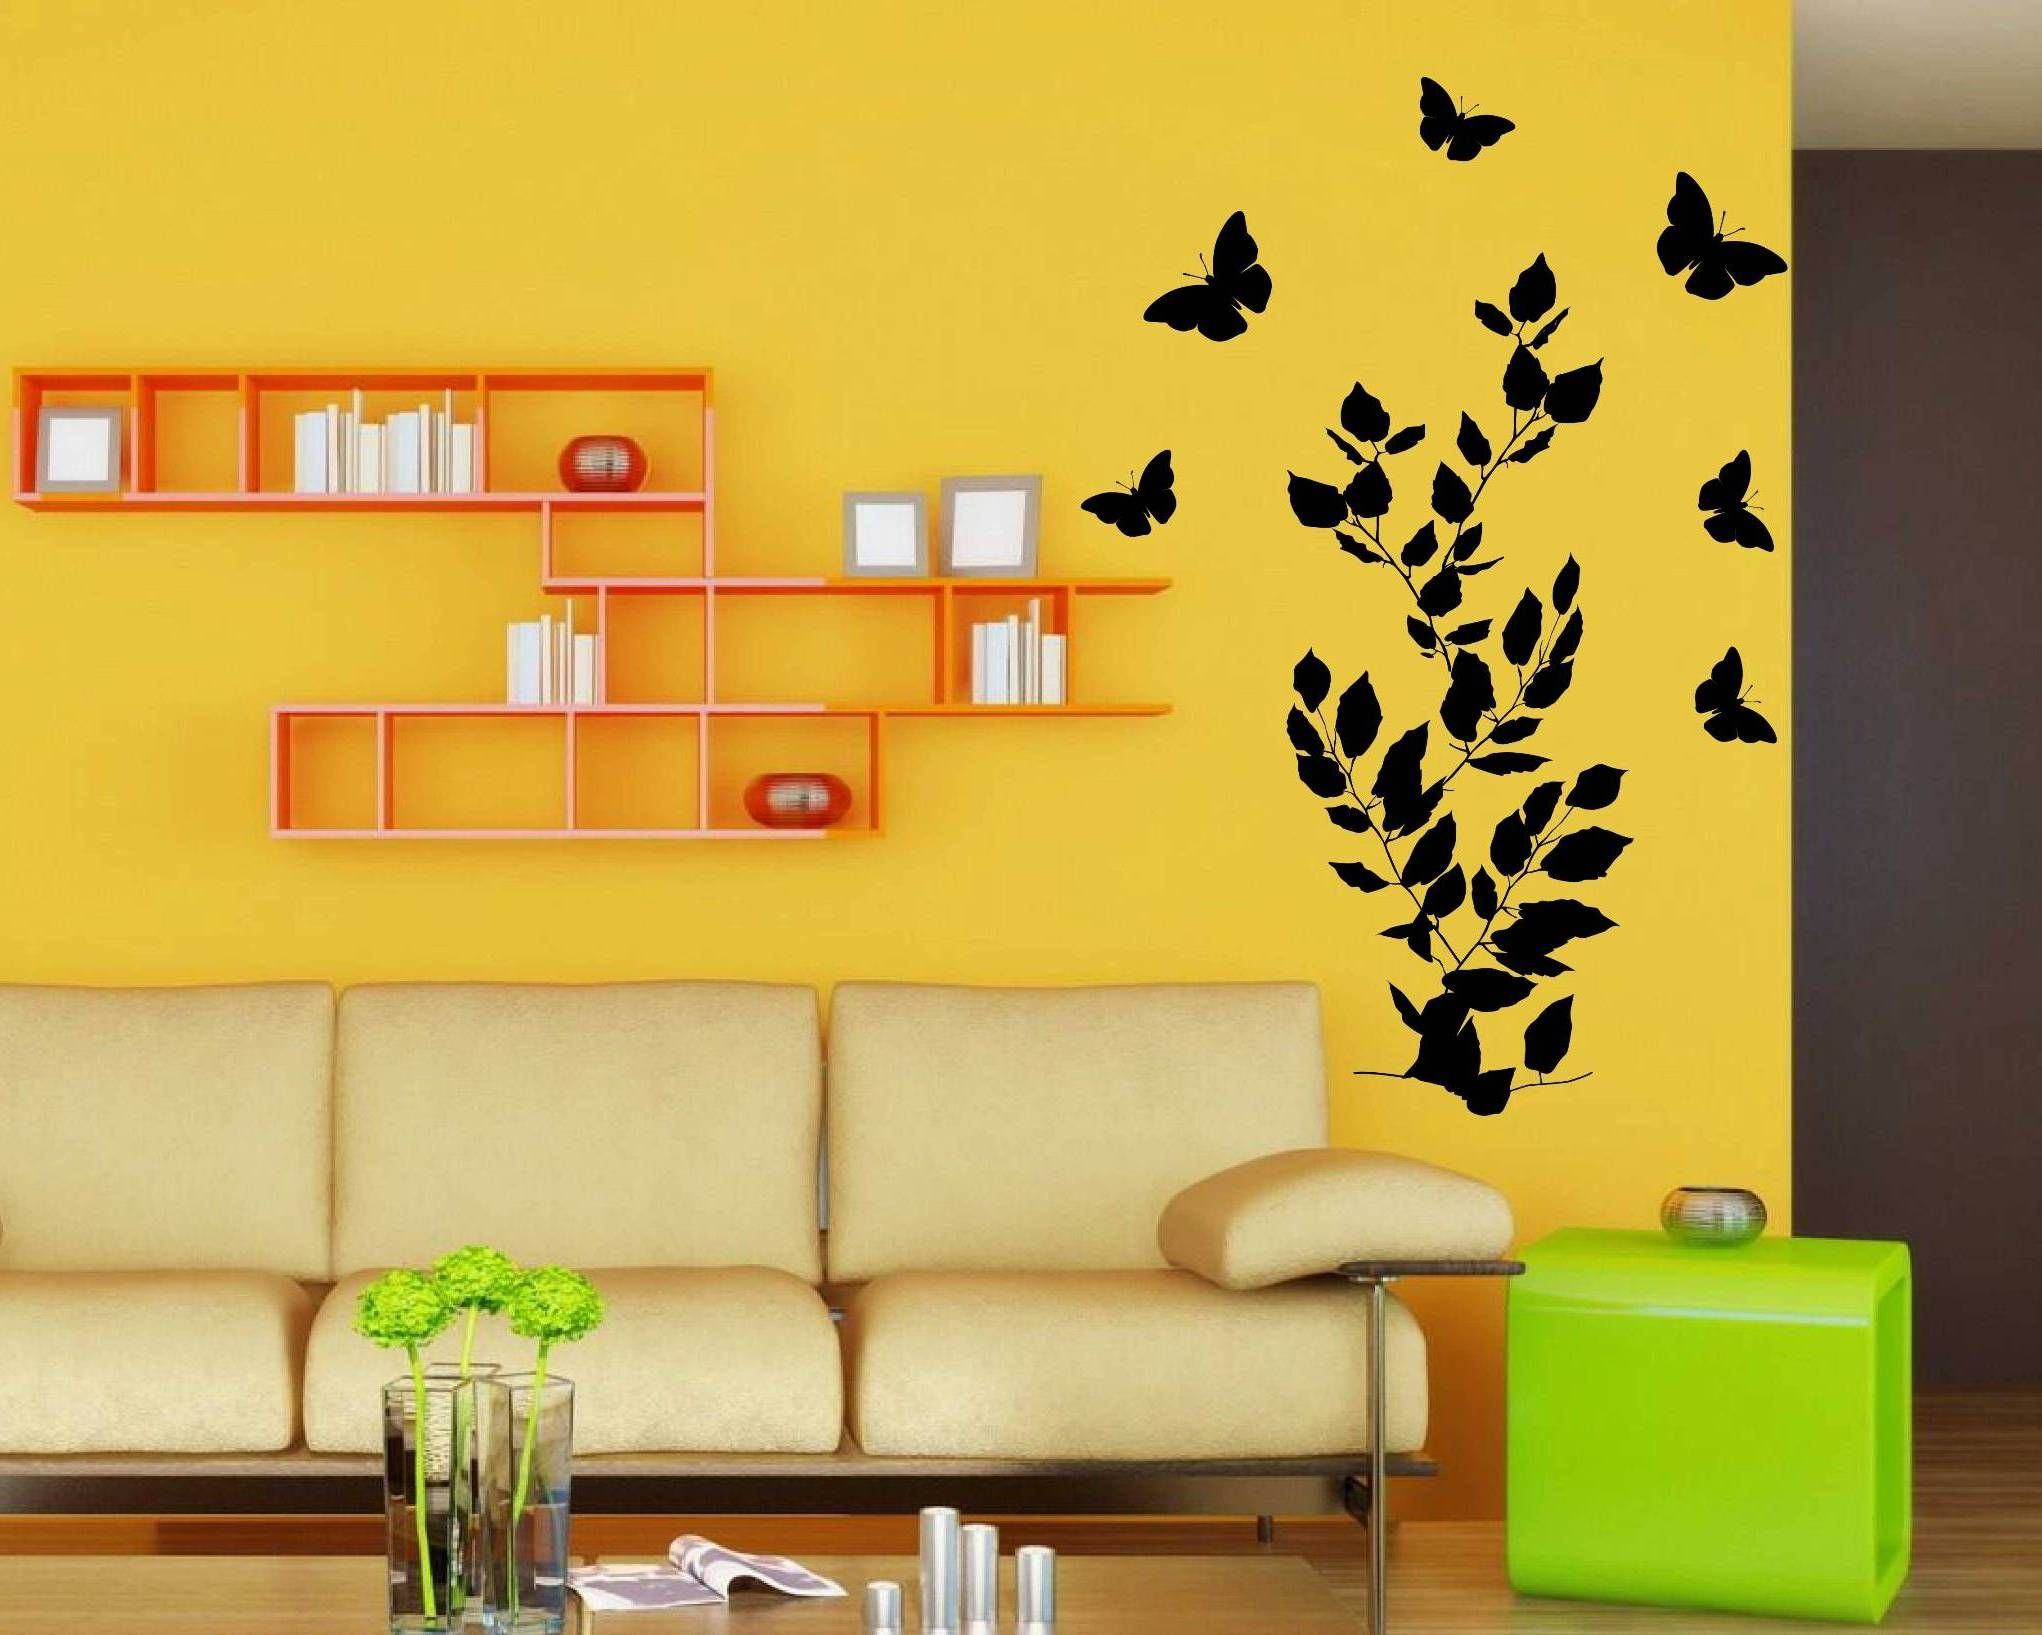 Butterfly & Leaves wall decal on a yellow wall | Wall Decal ...